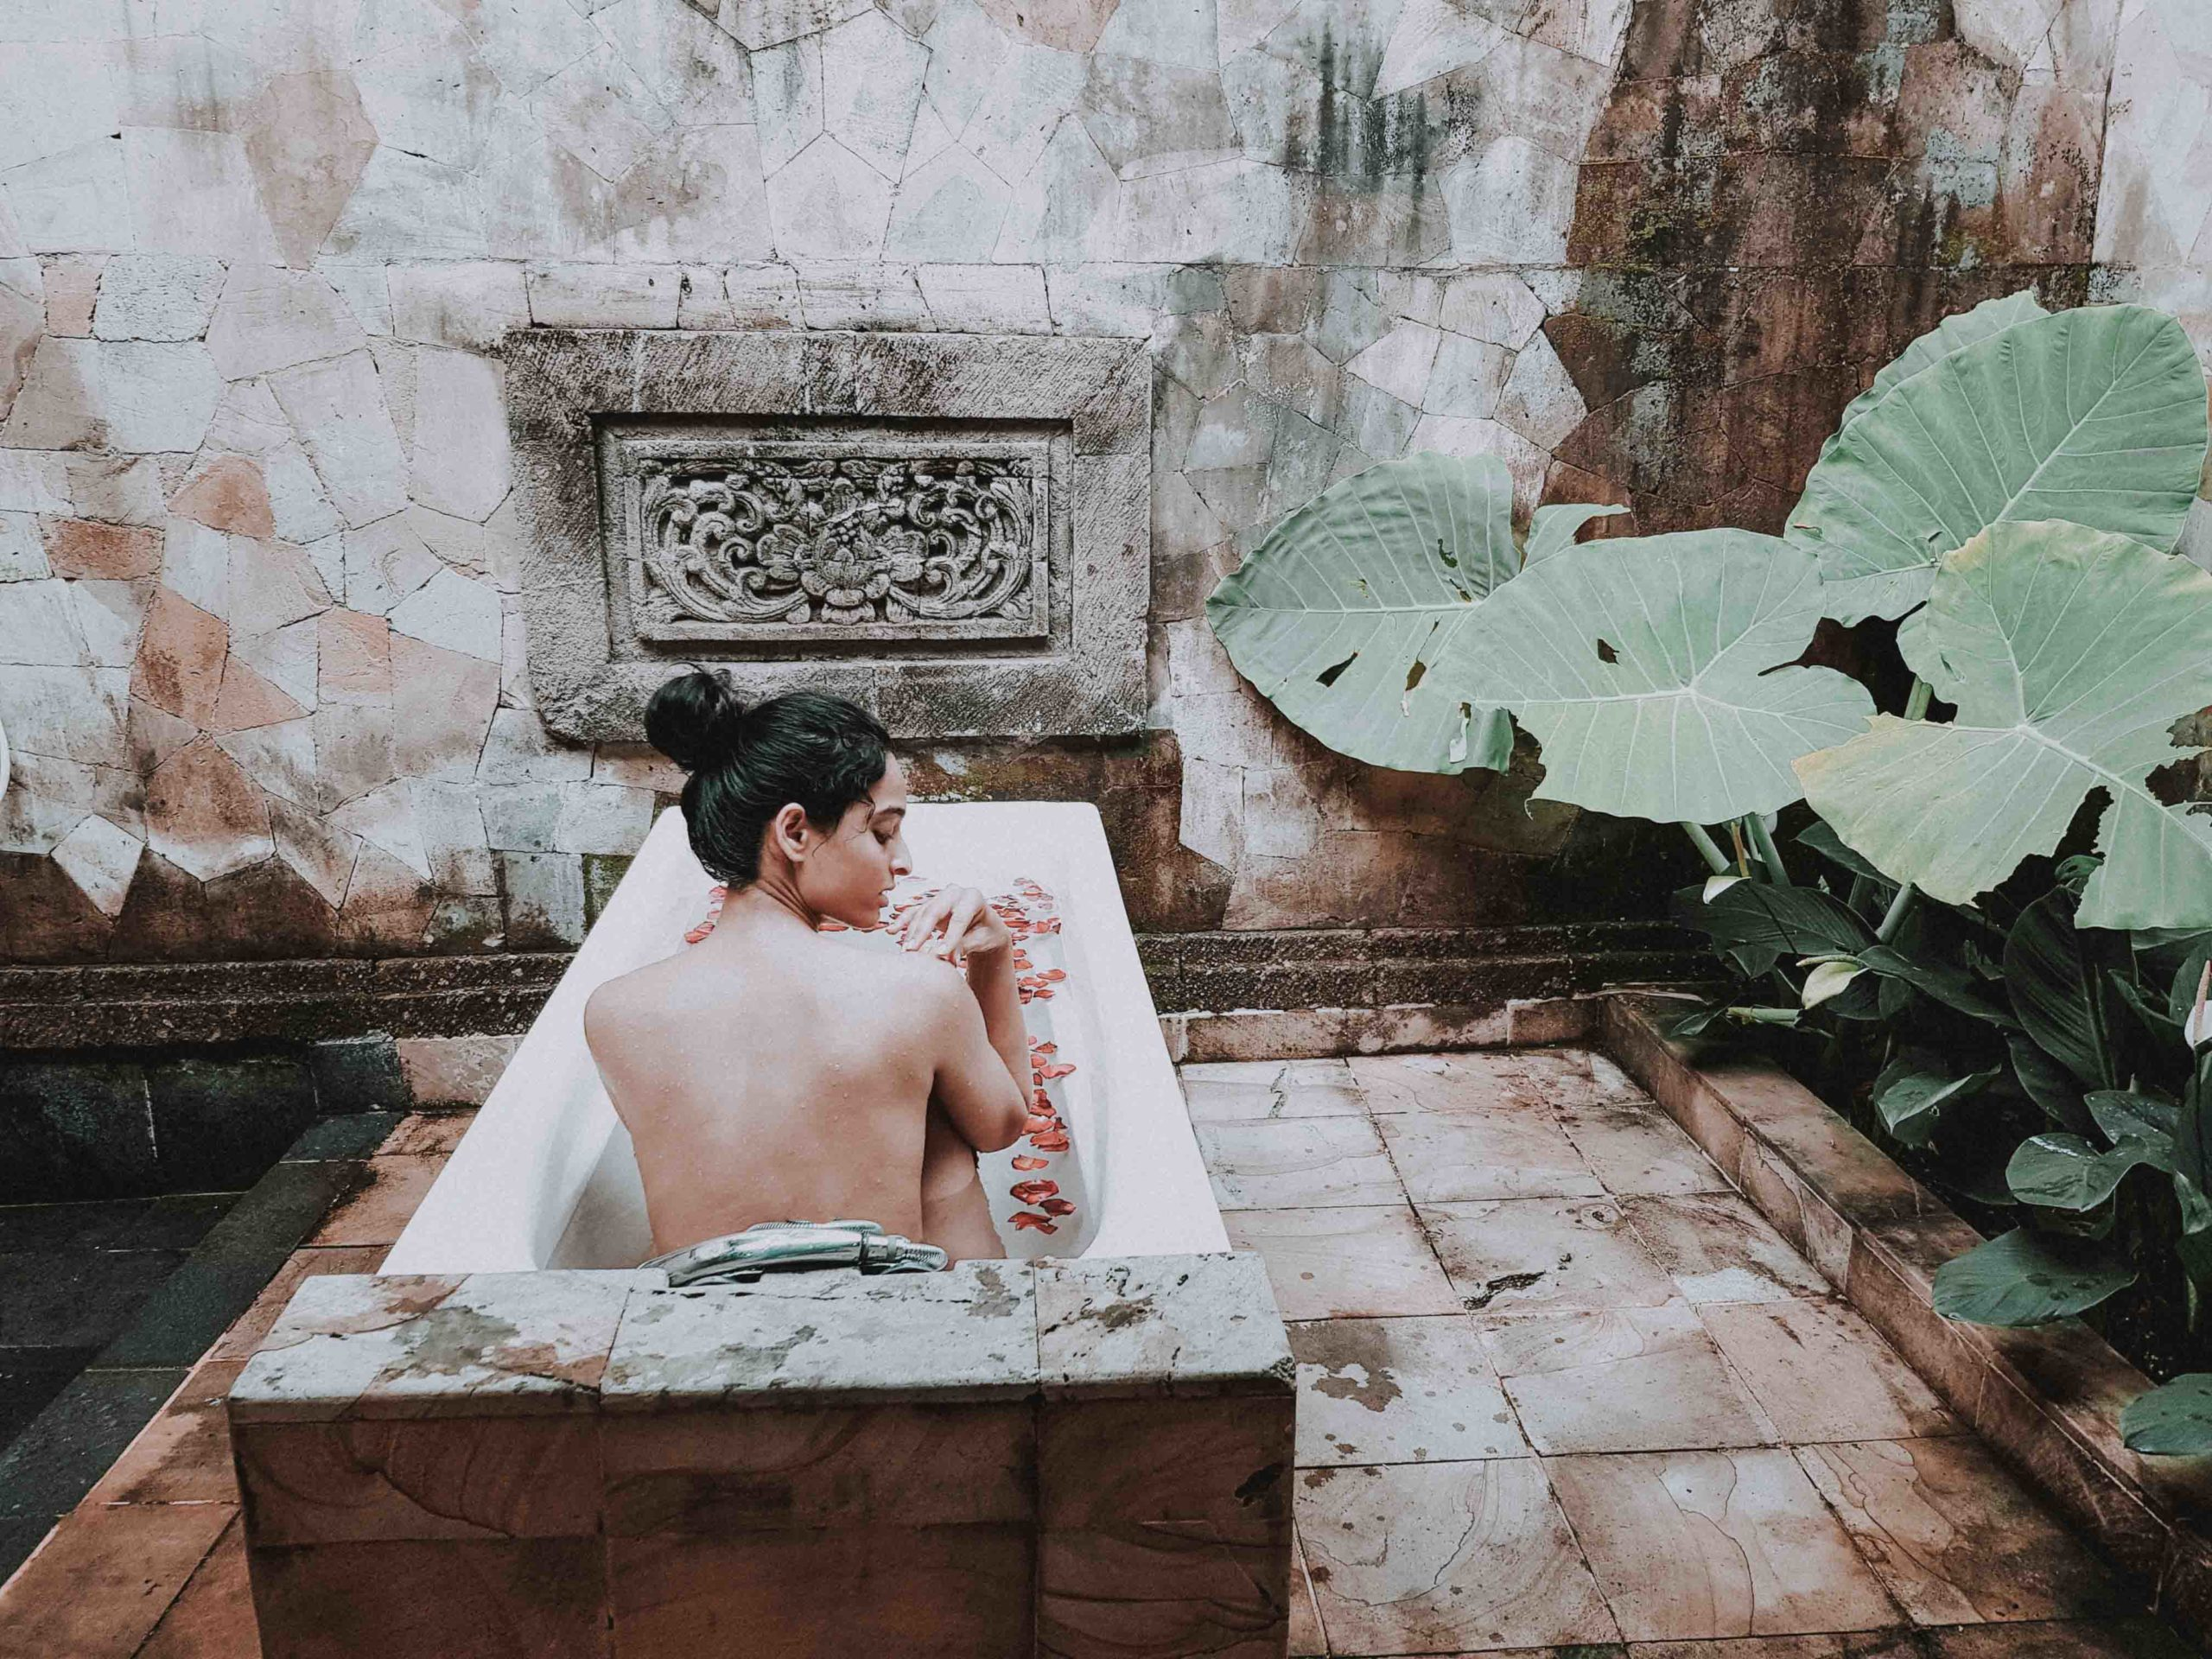 girl fashion blogger sitting in an outdoor bathtub at the spa in Bali for the blog about travel-guide and travel-tips to Bali, Indonesia for first-timers